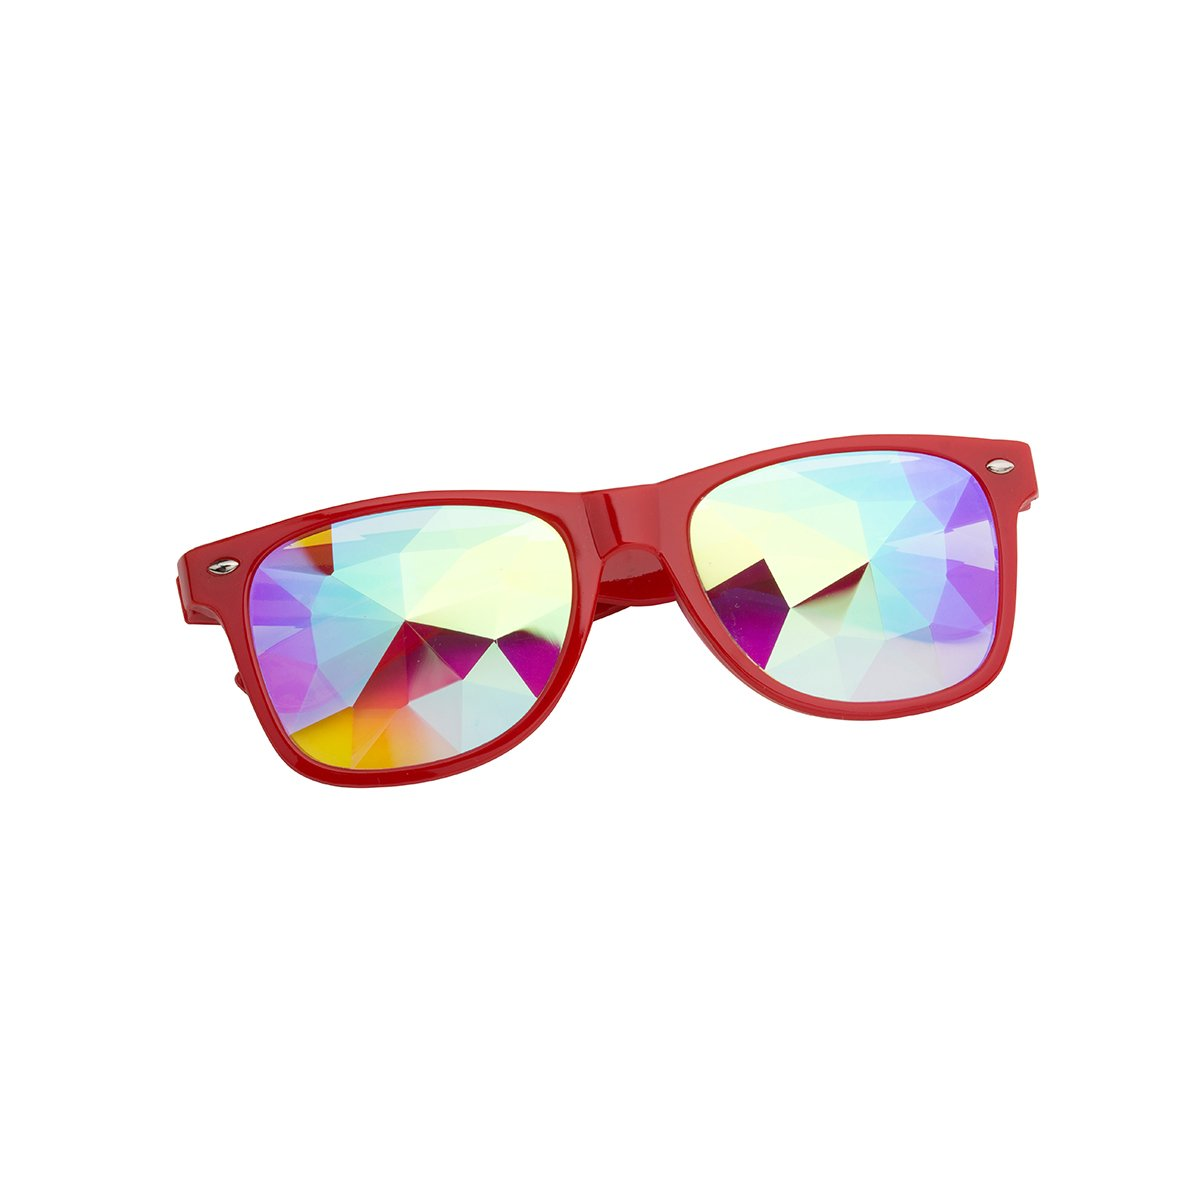 OMG_Shop Kaleidoscope Rainbow Glasses Prism Refraction Goggles for Festivals (Red-1)